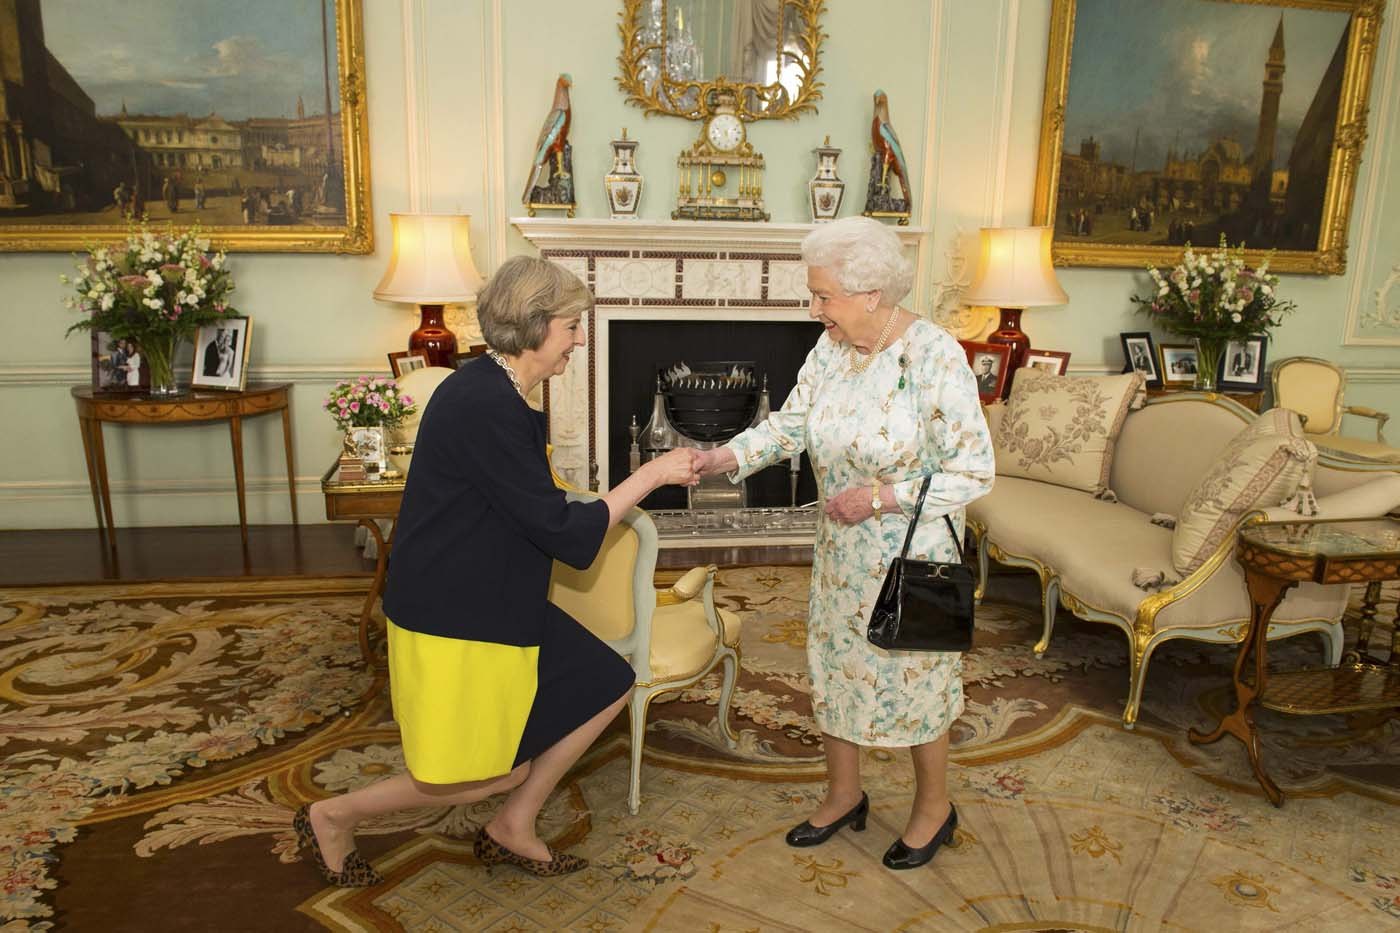 Britain's Queen Elizabeth welcomes Theresa May at the start of an audience in Buckingham Palace, where she invited her to become Prime Minister, in London July 13, 2016. REUTERS/Dominic Lipinski/Pool